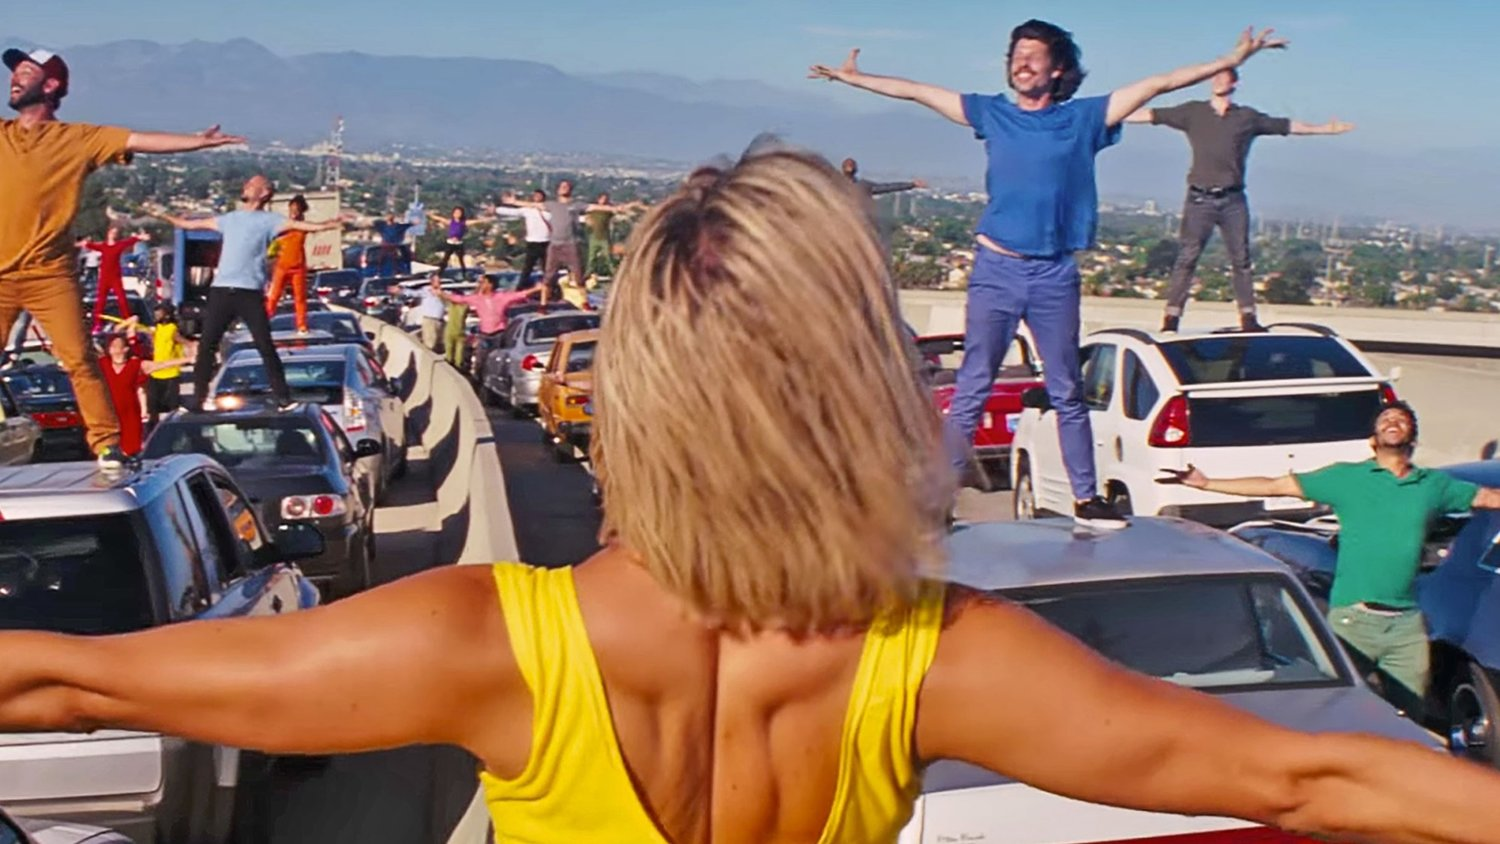 Watch LA LA LAND's Big Opening Musical Number Rehearsal Shot on the Director's iPhone